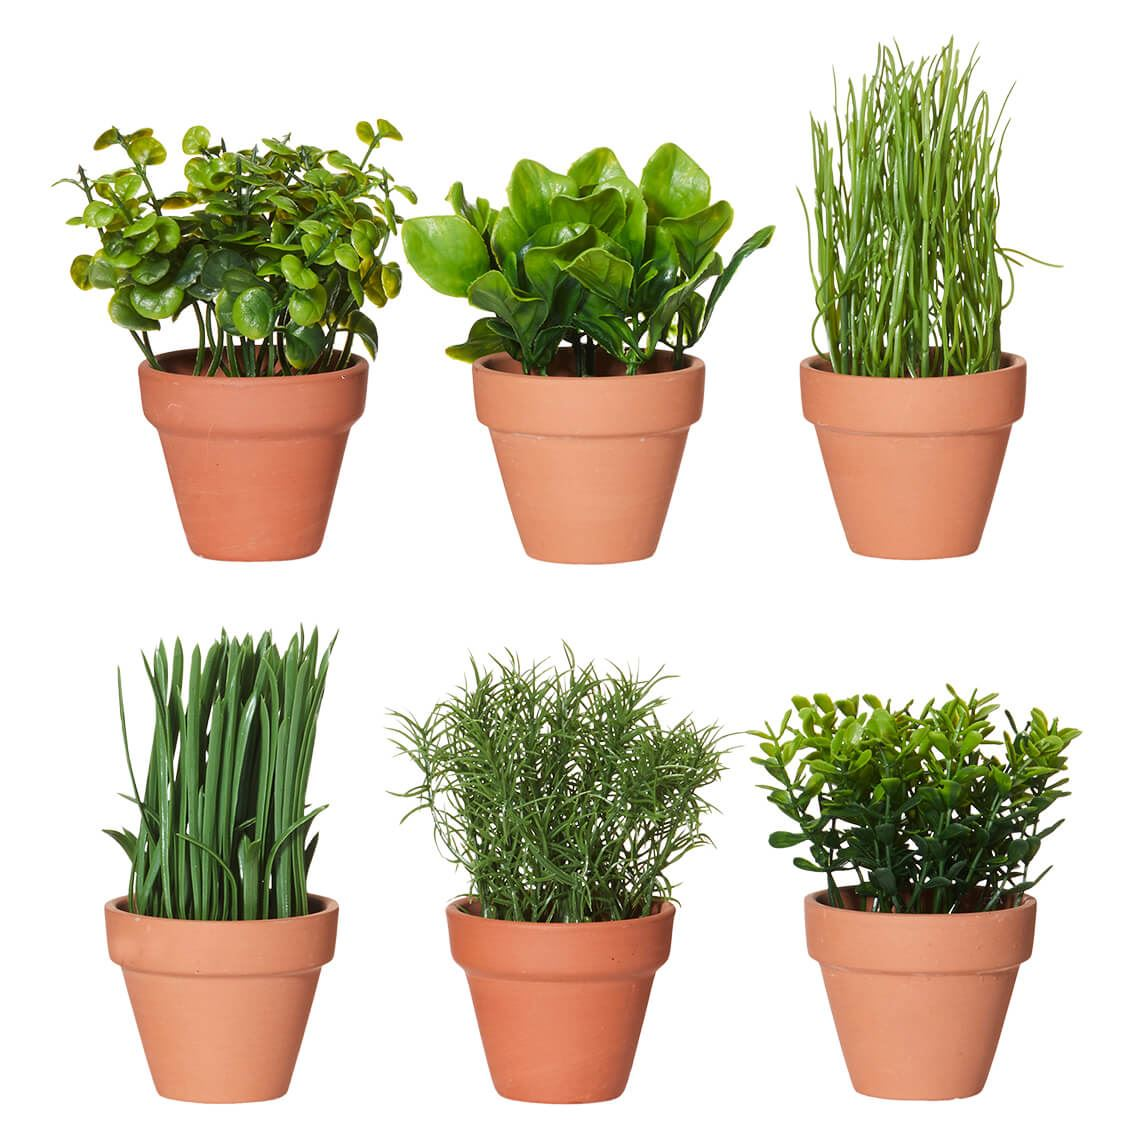 Mini Herbs In Pot Assorted Size W 7cm x D 7cm x H 16cm in Green Plastic/Concrete Freedom by Freedom, a Plants for sale on Style Sourcebook